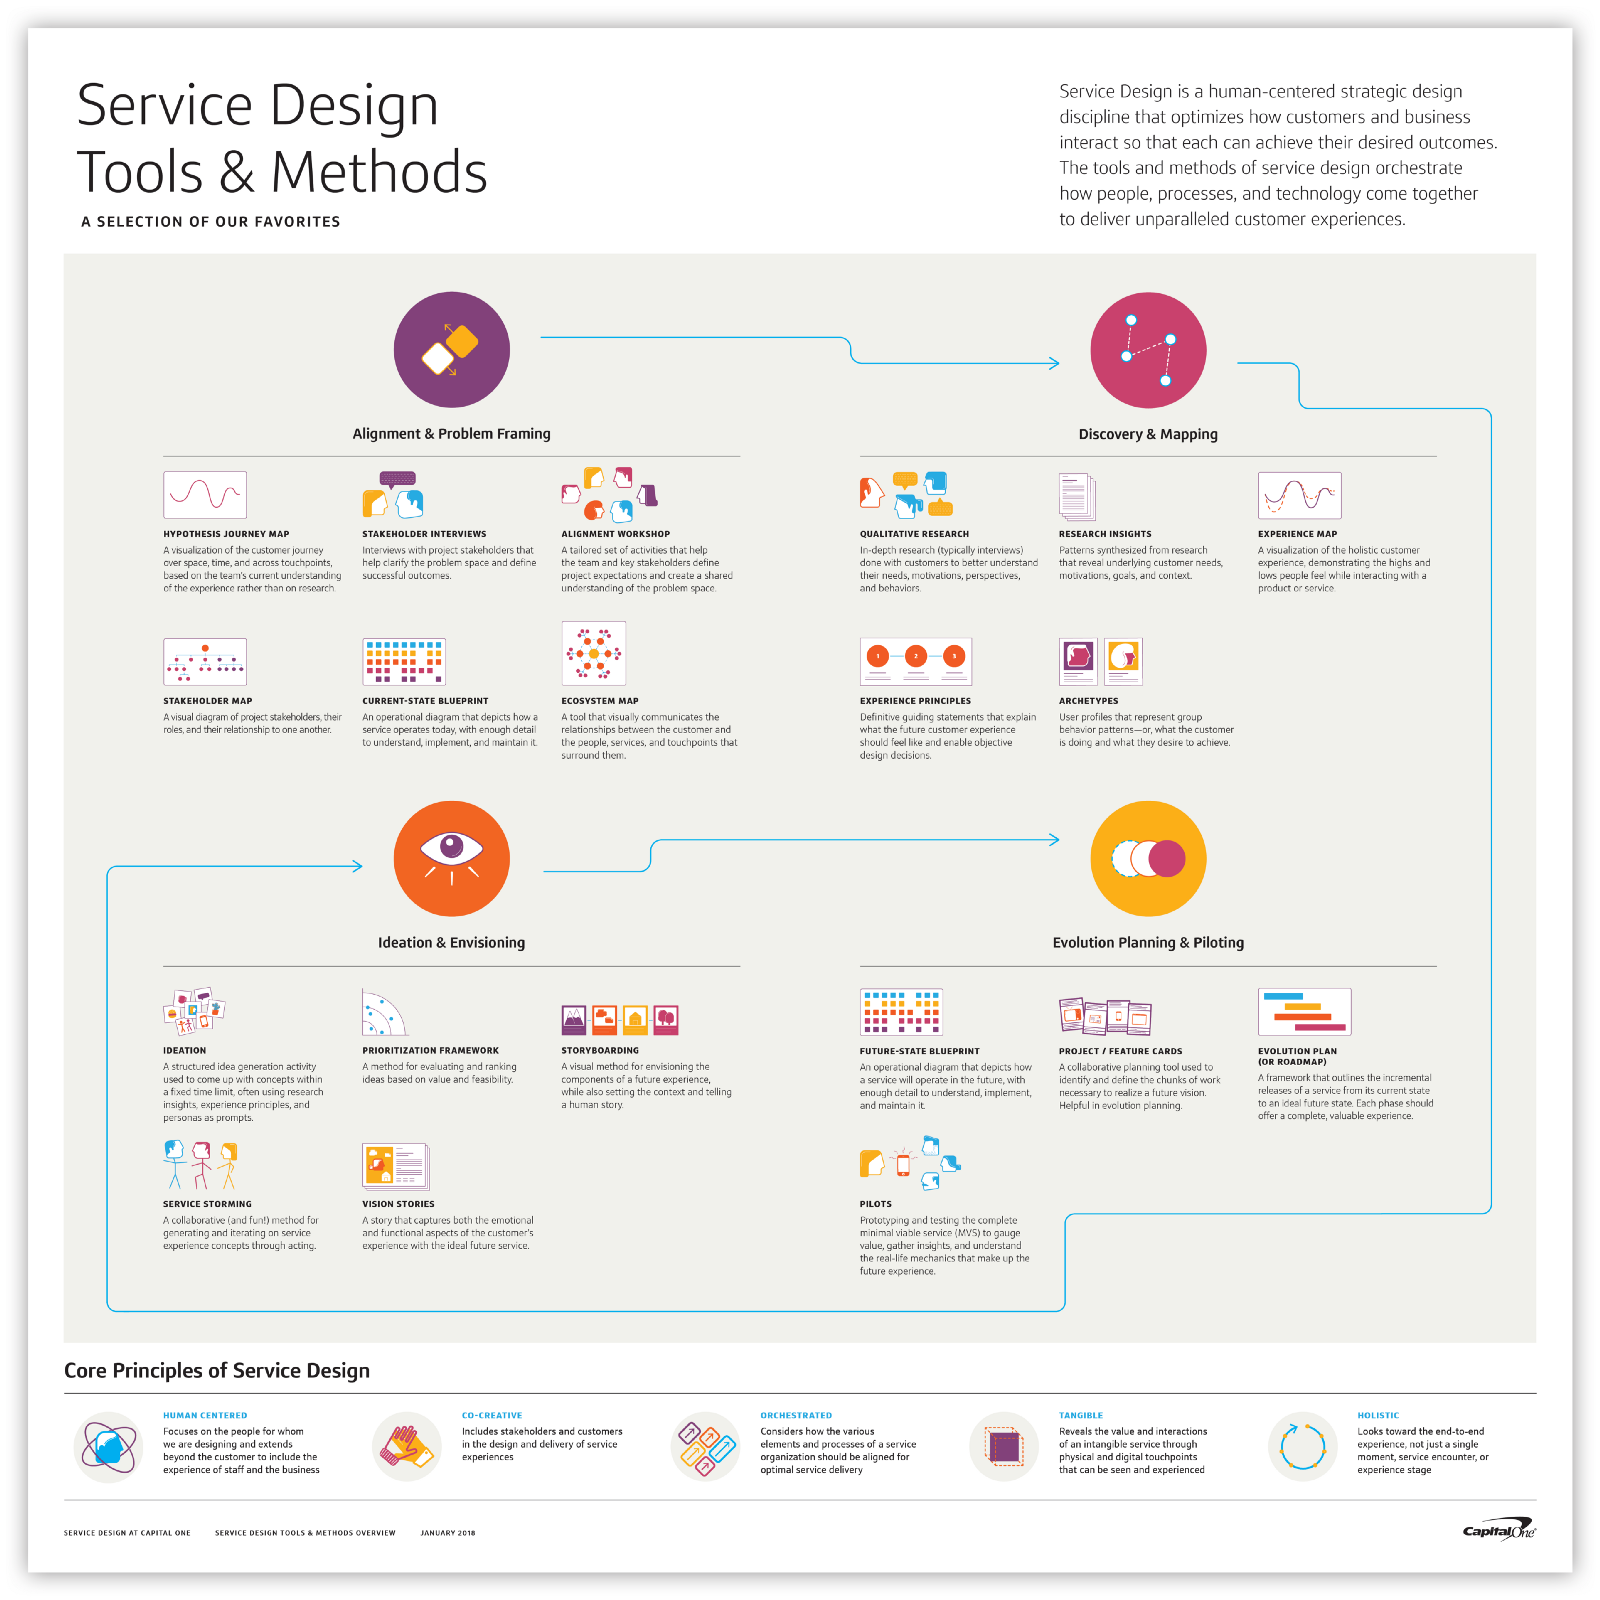 Service design tools methods one design community medium download the poster here or check out our mobile friendly version here malvernweather Gallery